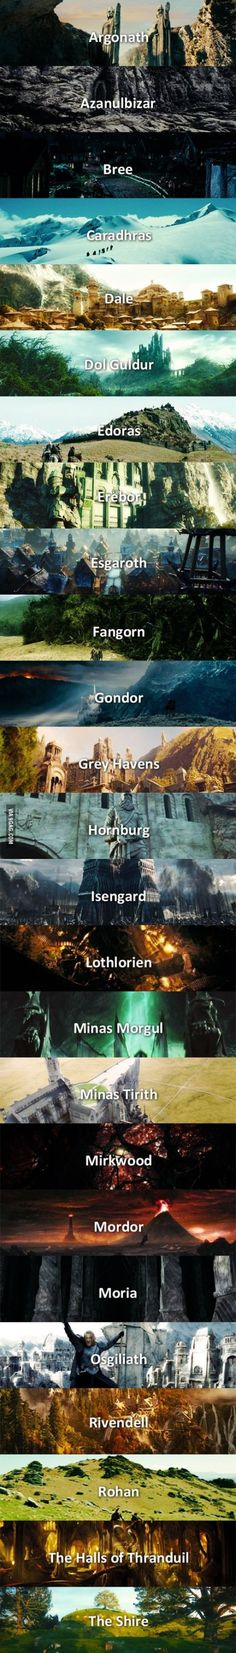 The Middle Earth.